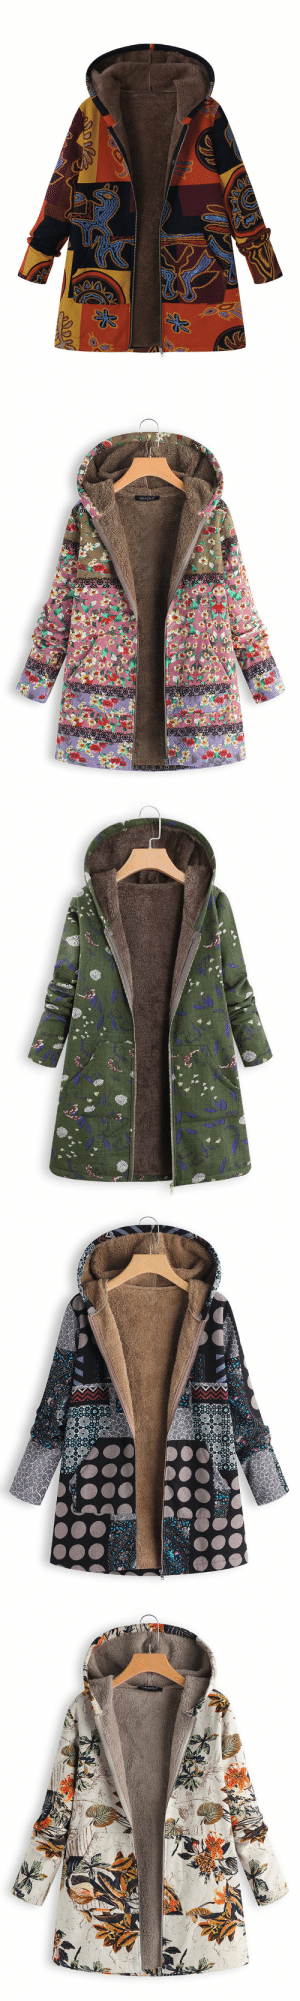 permanentfilemugglethings:  Printed Hooded Pockets Jackets for Women  Check out HERE  20% off coupon code:October20 : Opoo   GRACILA   w  וadll  -ו3 y permanentfilemugglethings:  Printed Hooded Pockets Jackets for Women  Check out HERE  20% off coupon code:October20